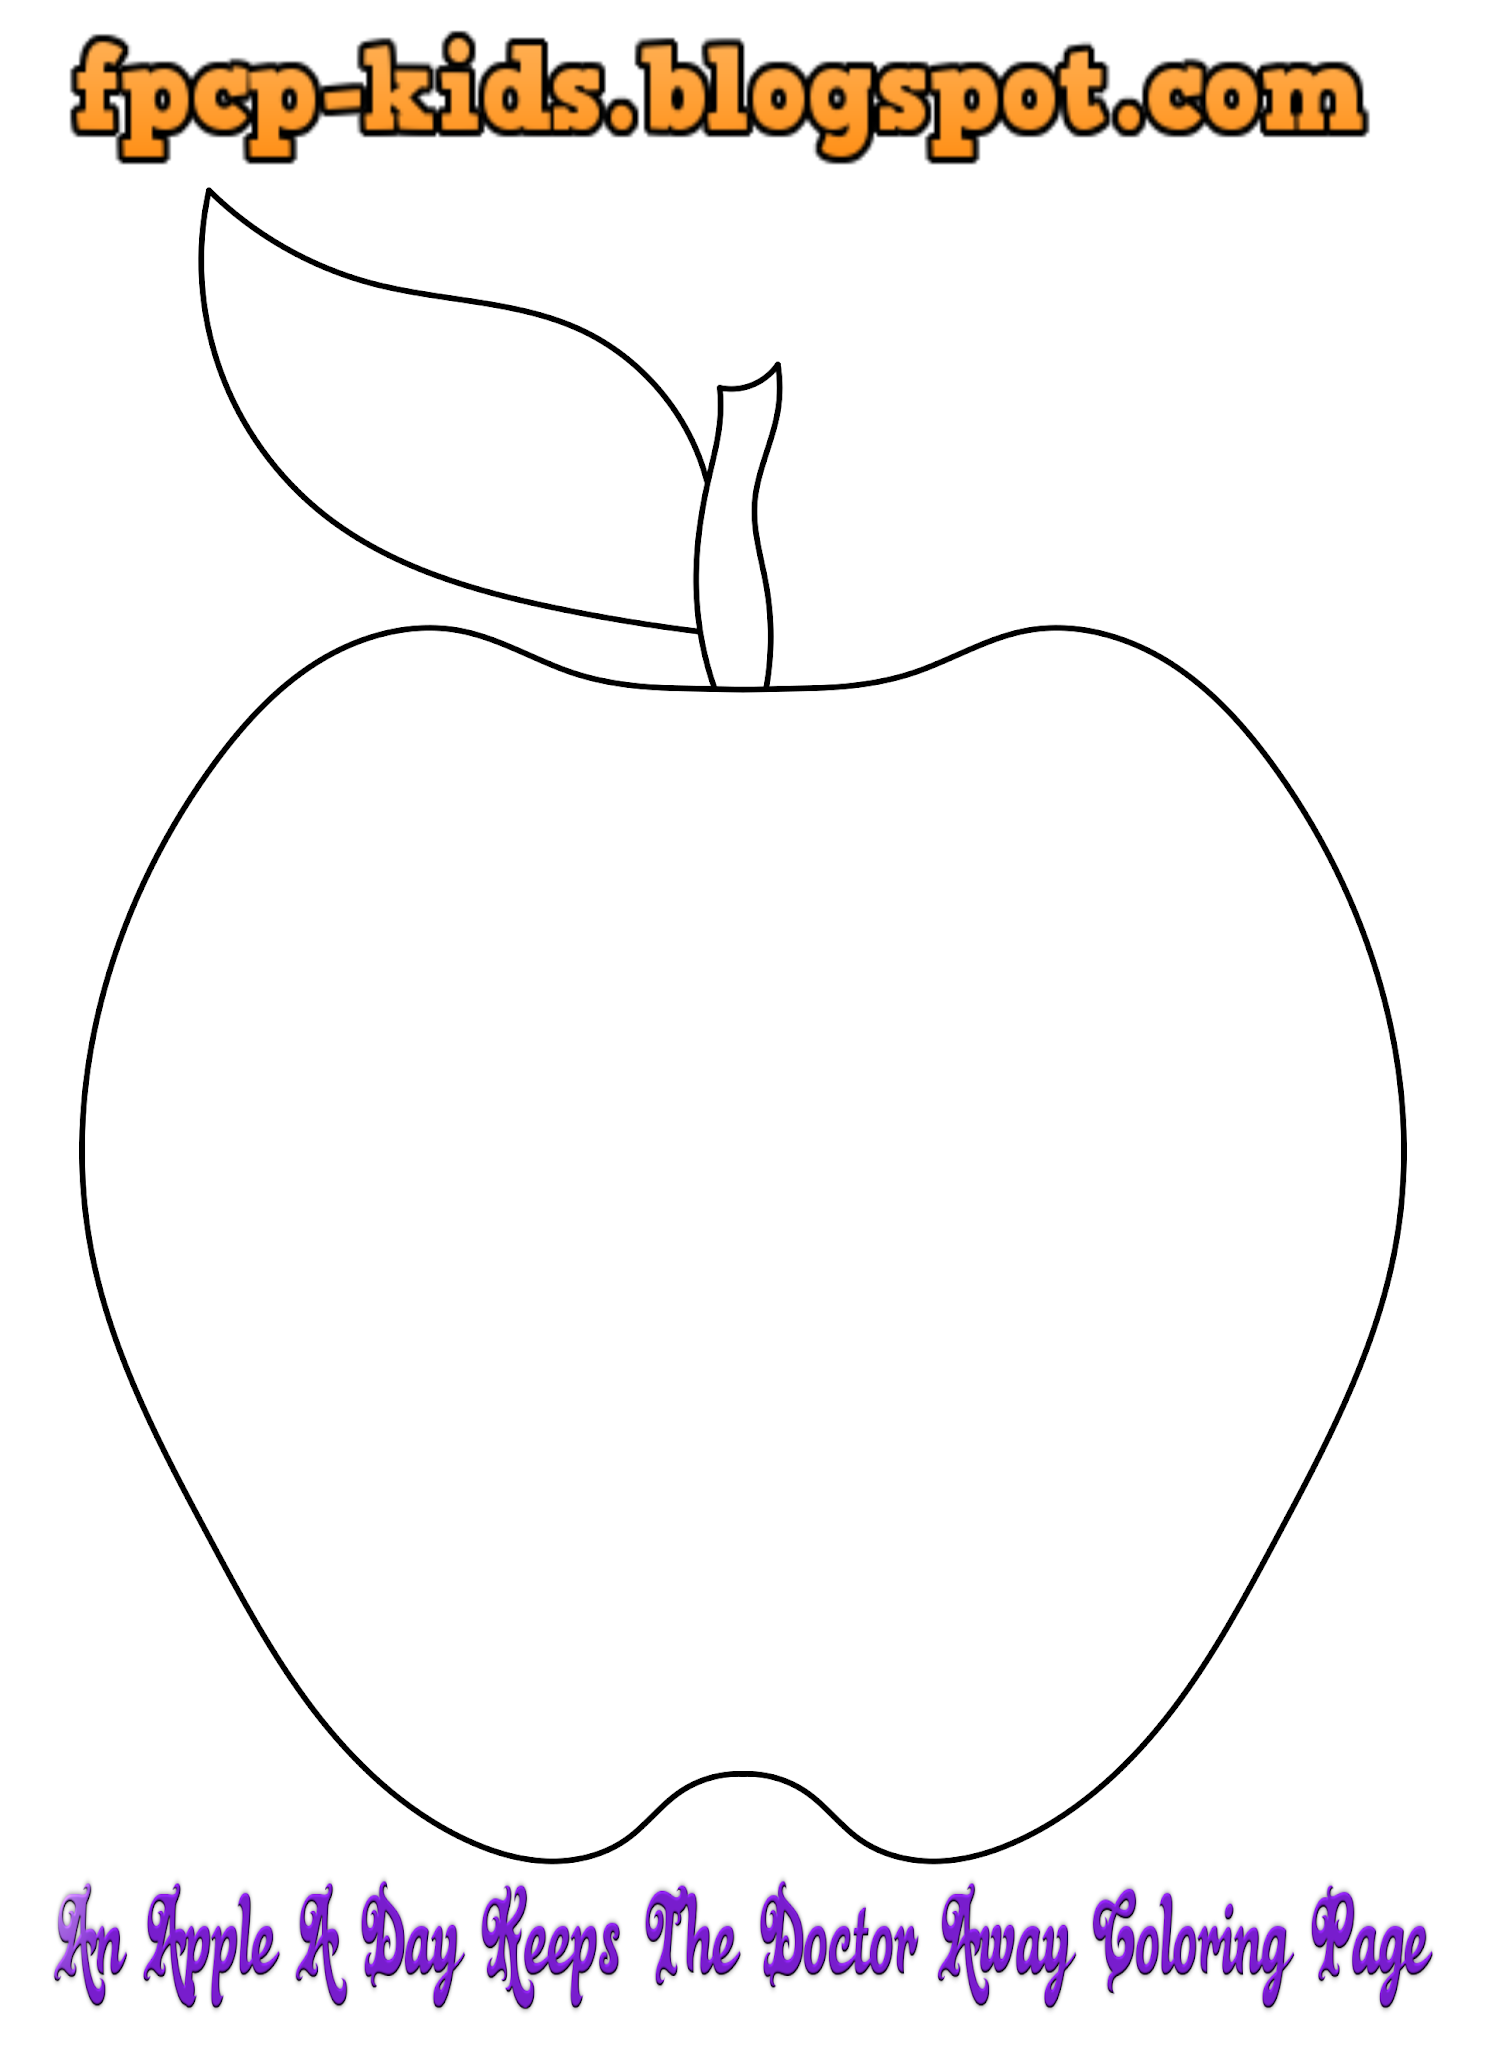 An Apple A Day Keeps The Doctor Away Coloring Page Apple Free Printable Coloring Pages